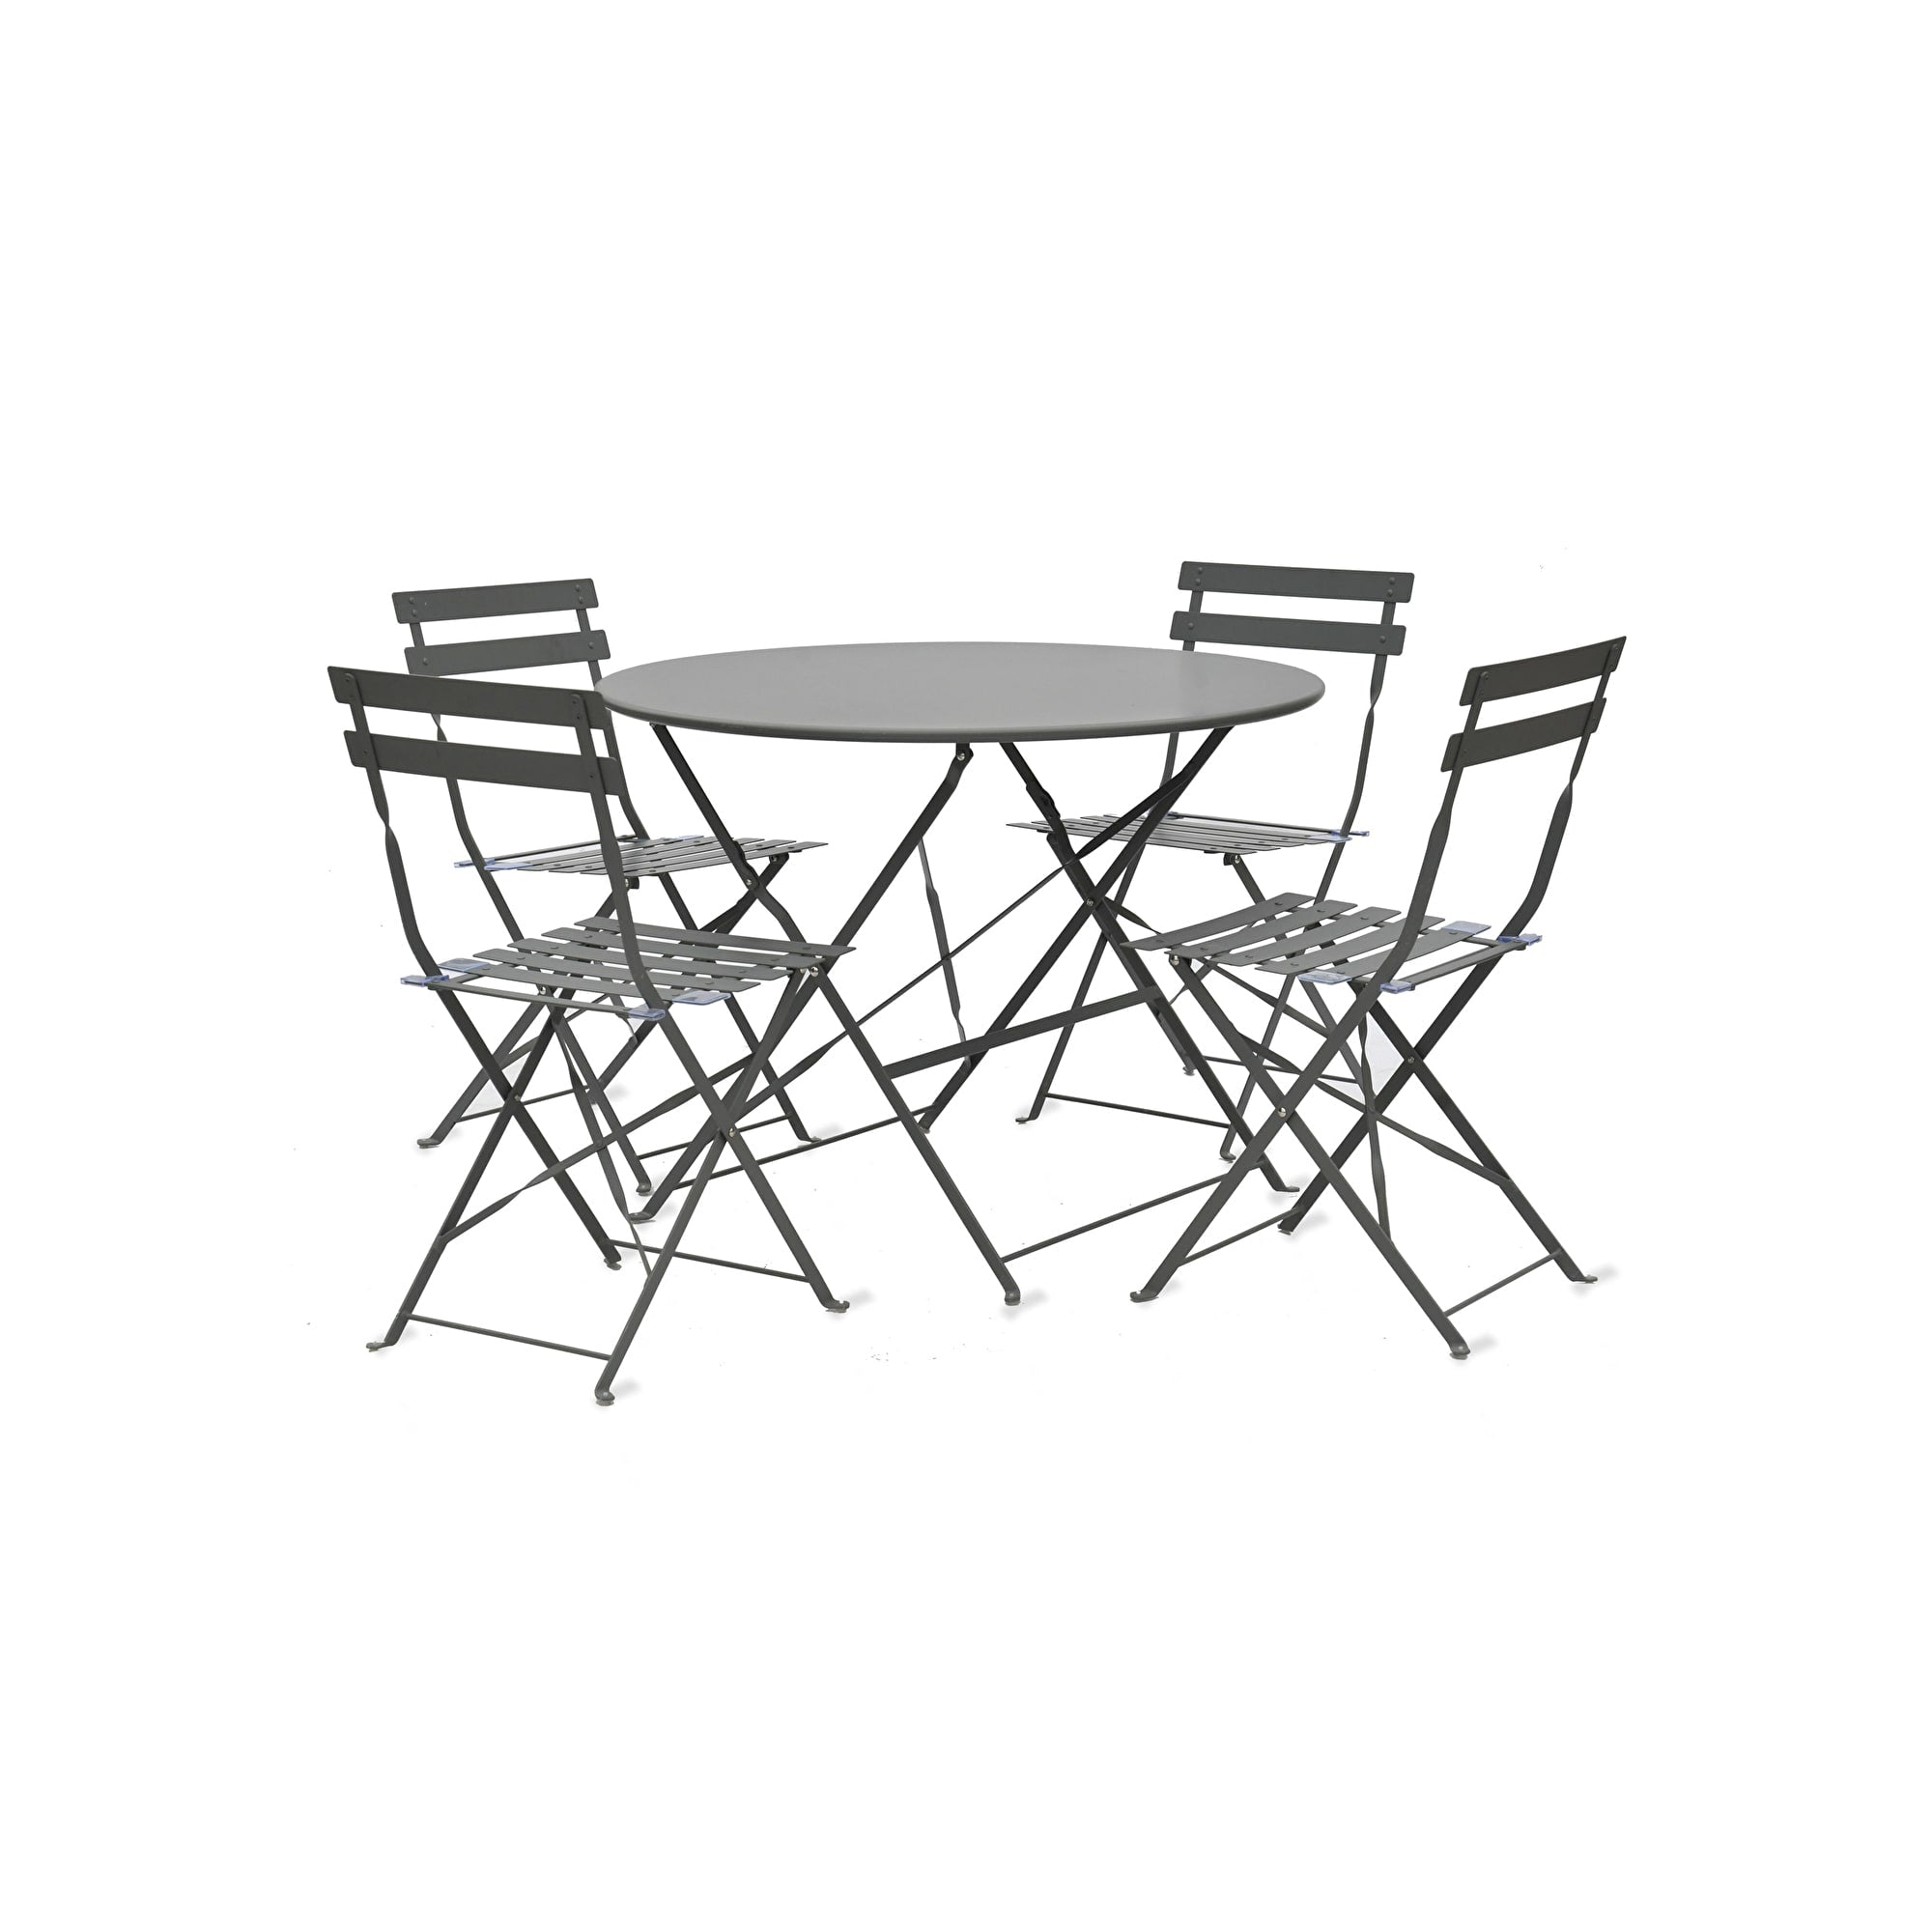 Seine Bistro Set in Carbon